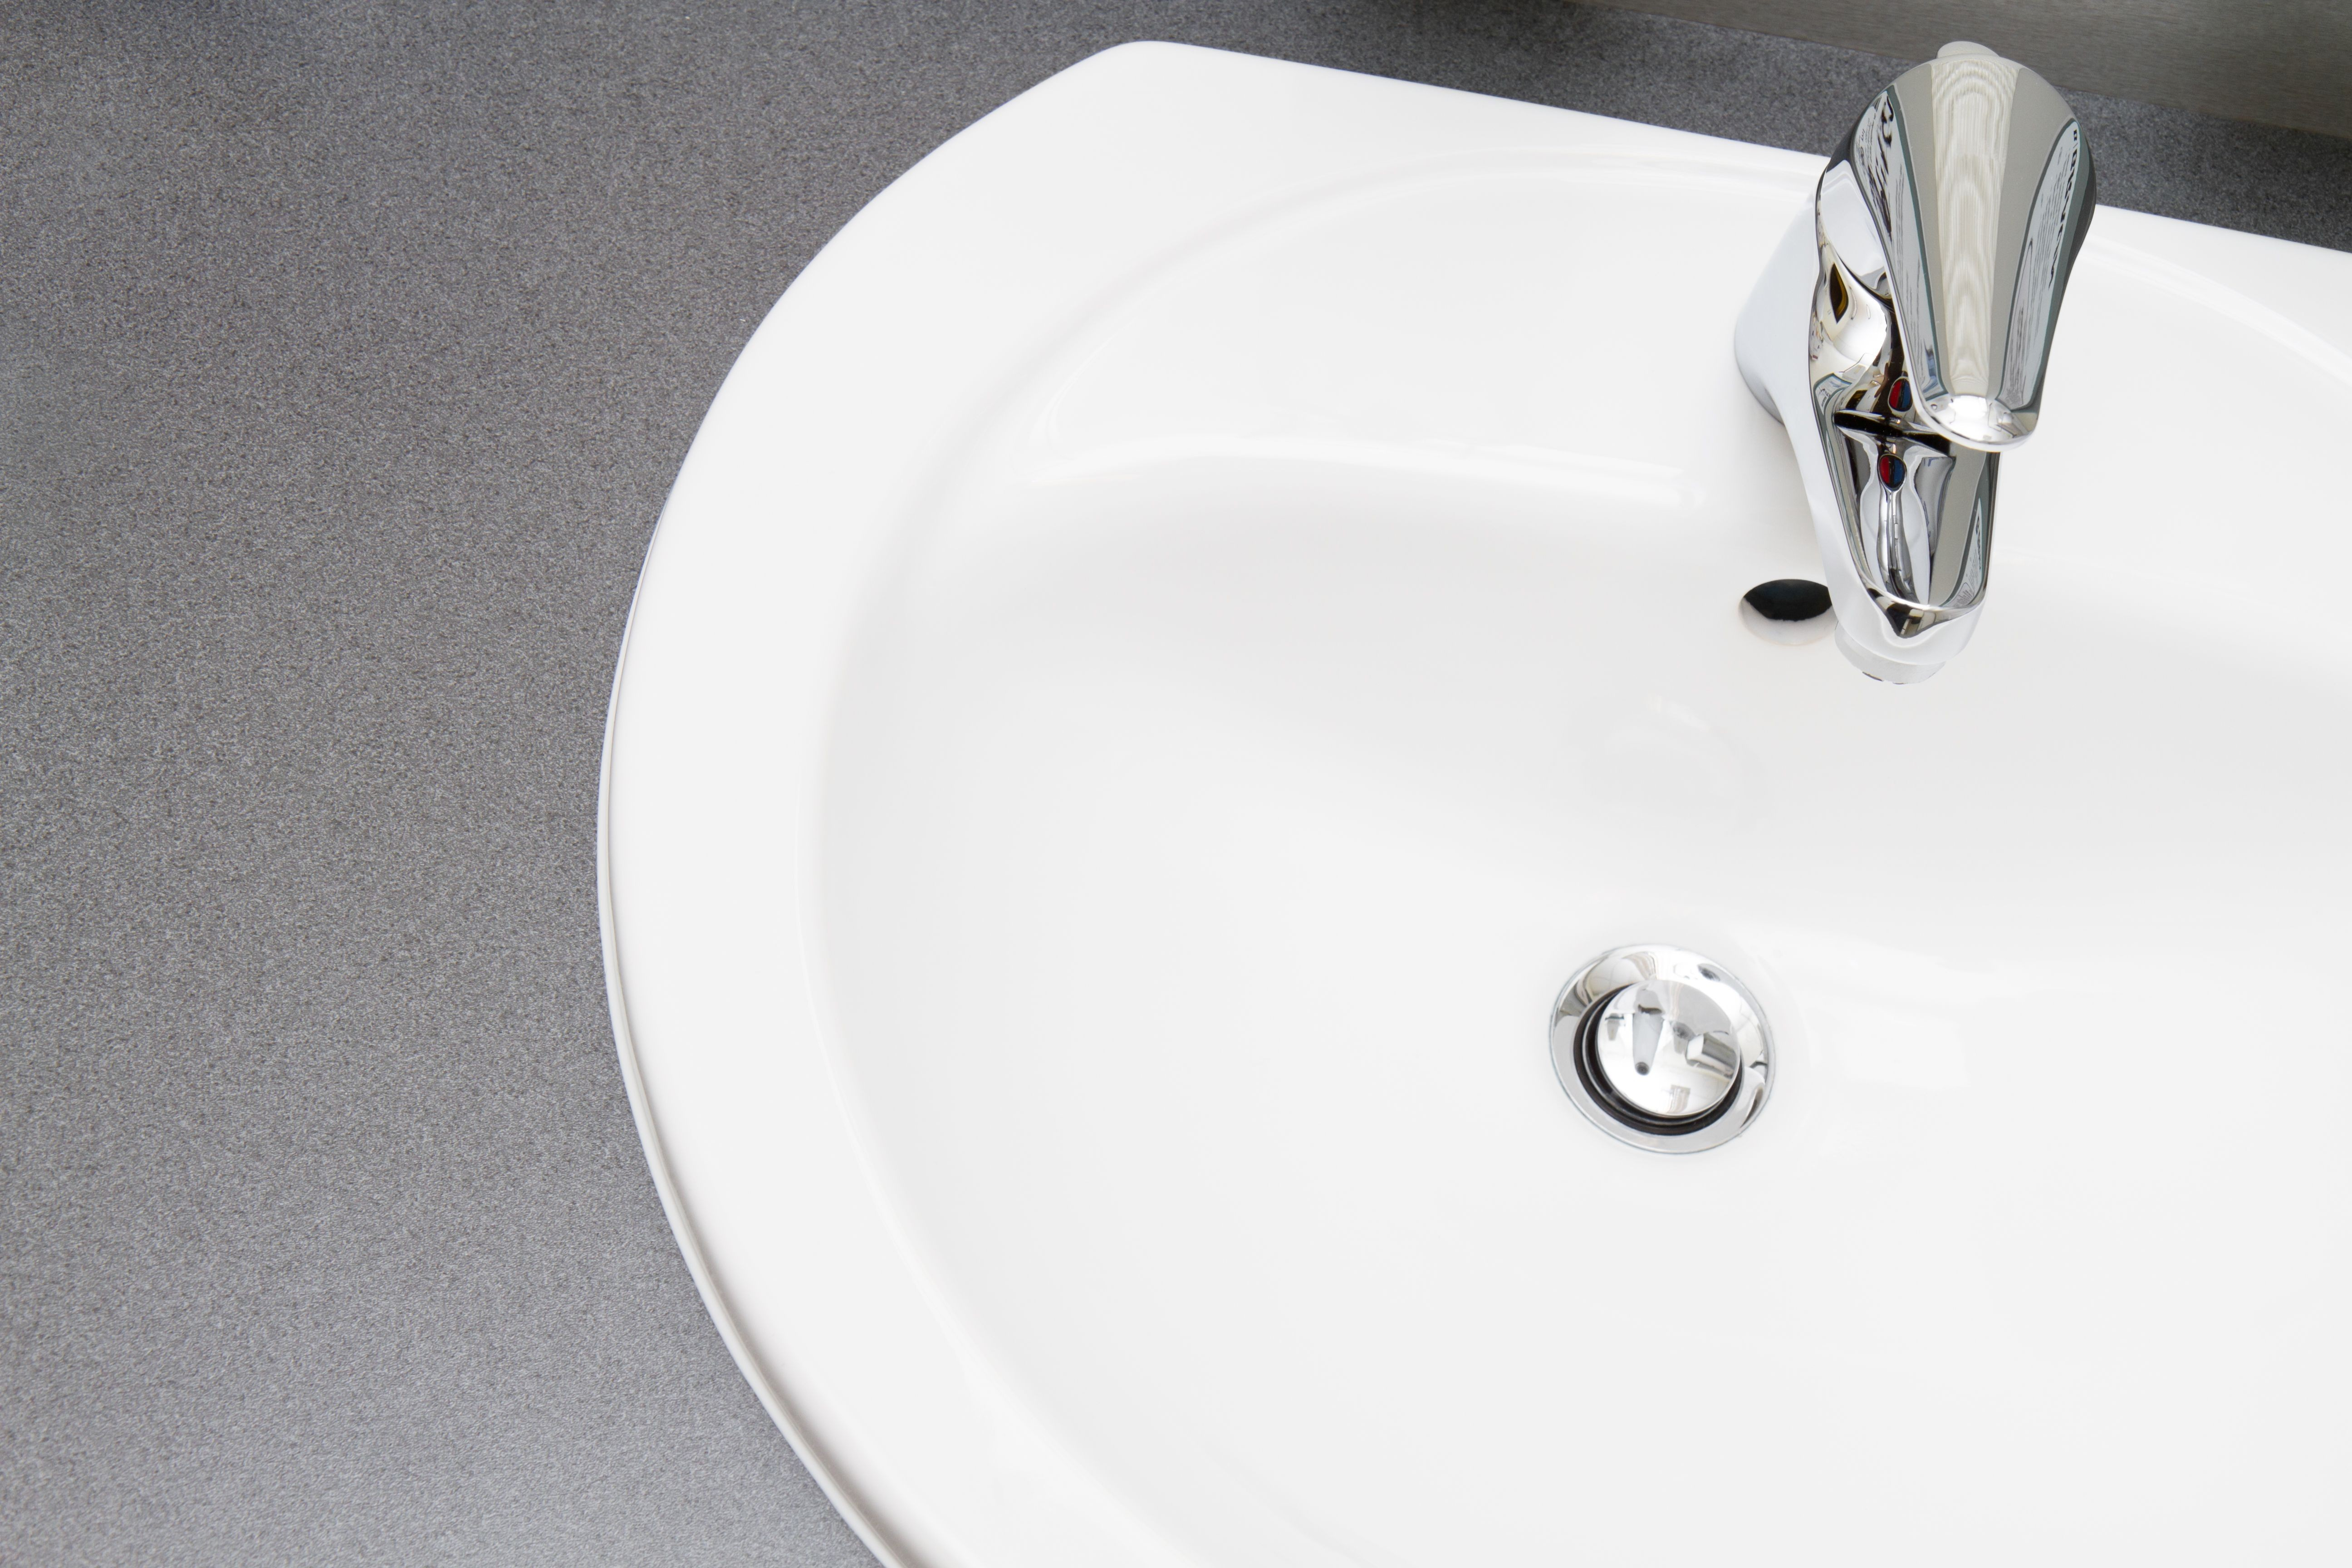 Bathroom Sink Drain Beautiful How to Install Pop Up Drain In A Bathroom Sink Collection